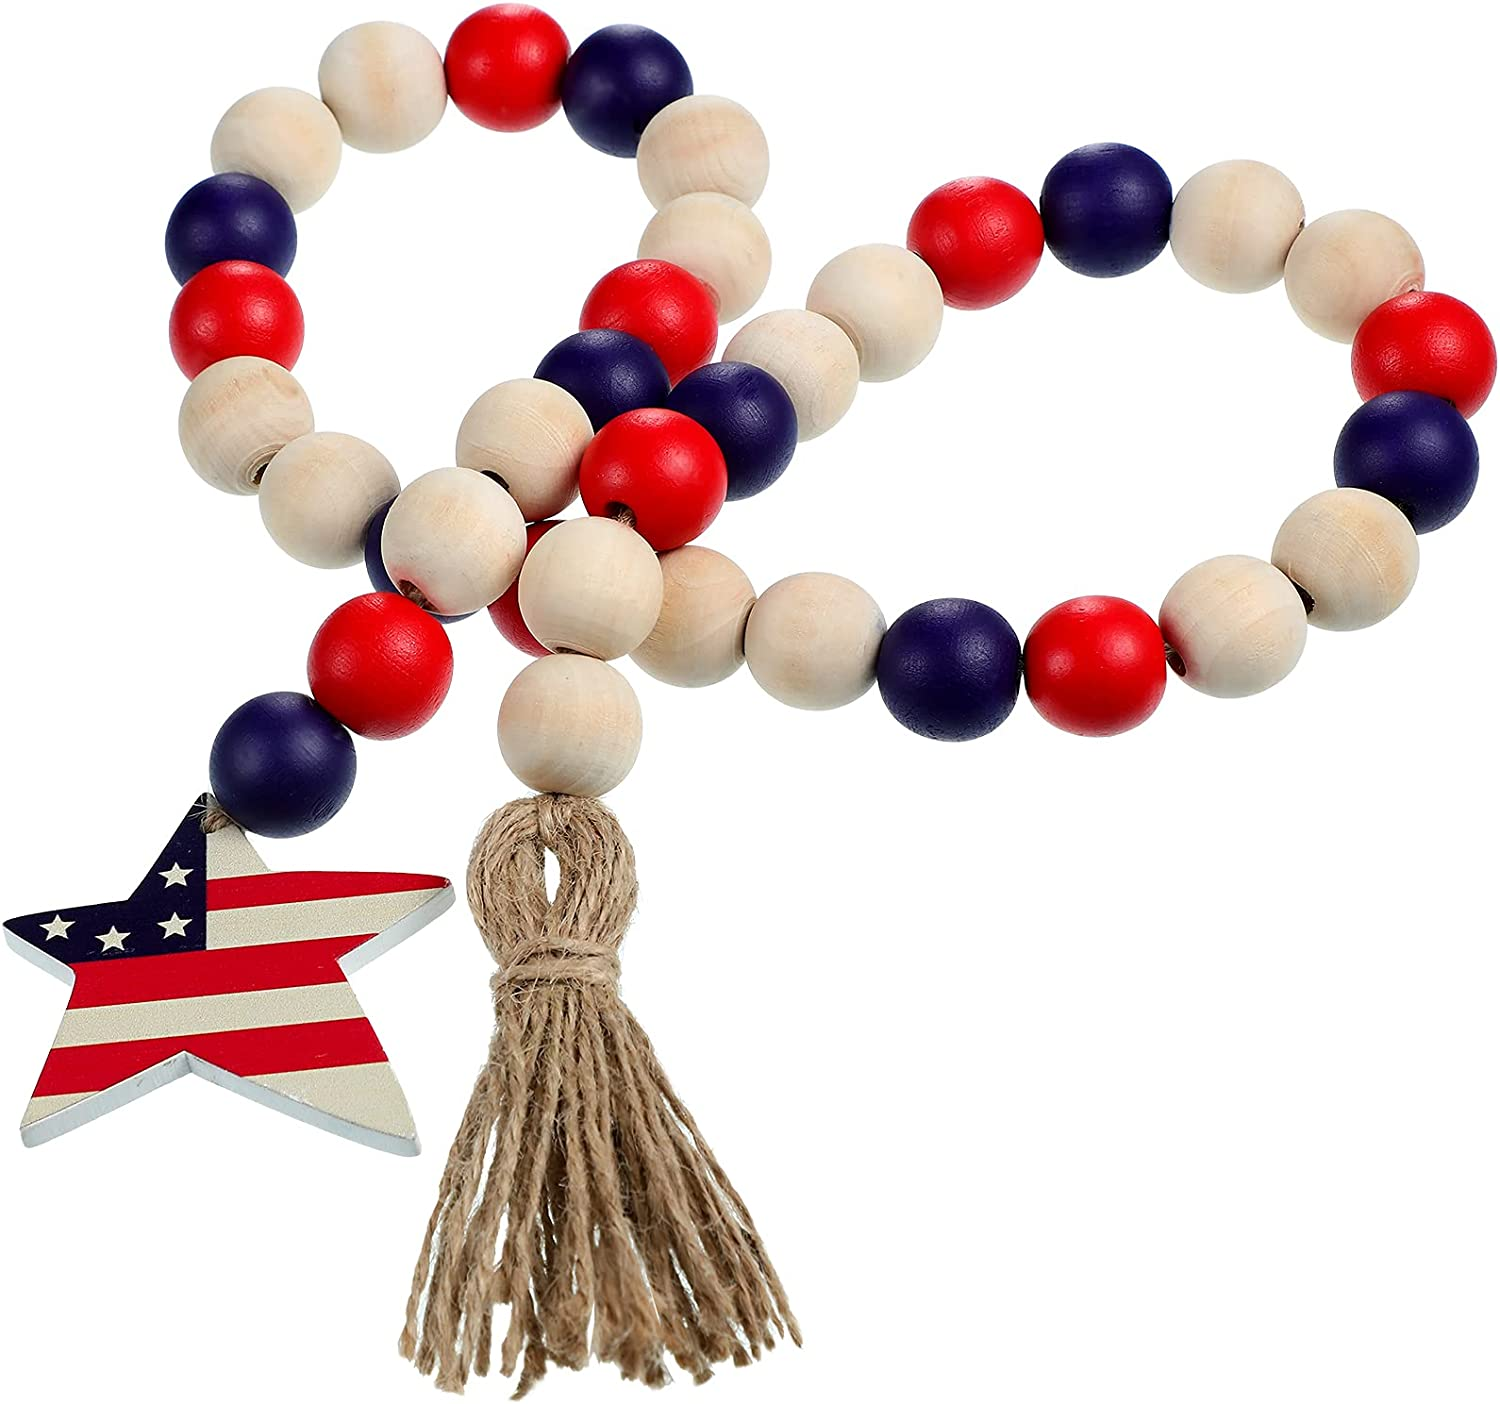 Patriotic Independence Day Wood Bead Garland with American Flag Star Farmhouse Wall Hanging Prayer Beads Decorative Tray Decor for 4th of July Memorial Day Decor Rustic Tassels Decor